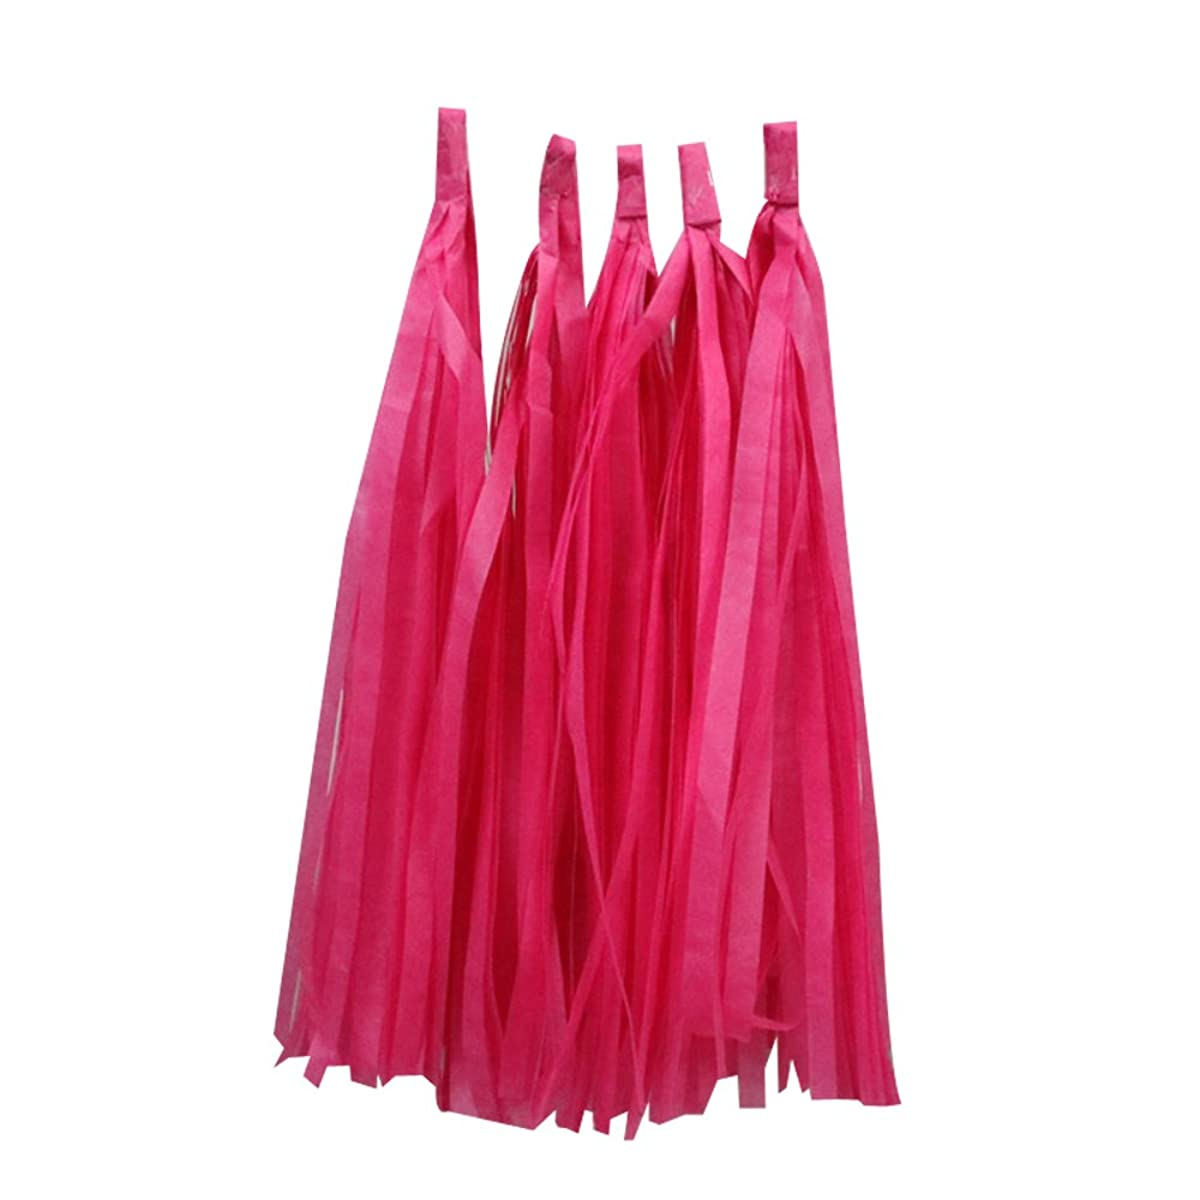 Estyle Fashion 10PCS Birthday Tissue Paper Tassel Garland for Baby Shower Party Wedding Decoration (Rose Red)